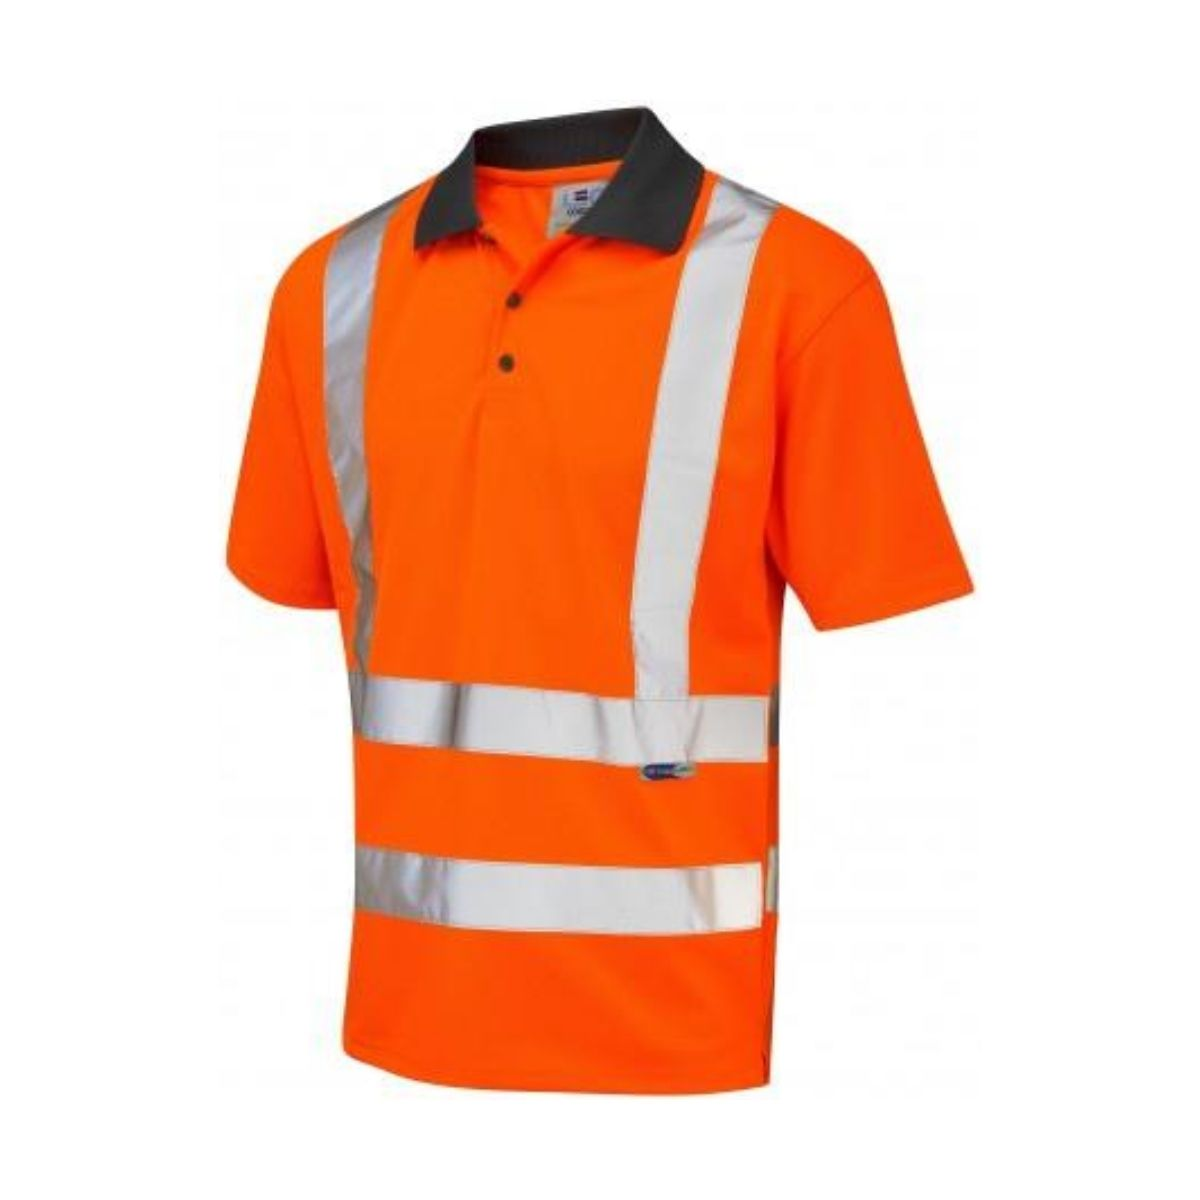 HV5000 Hi-Vis Polo Shirt Polycotton 175gsm - Orange